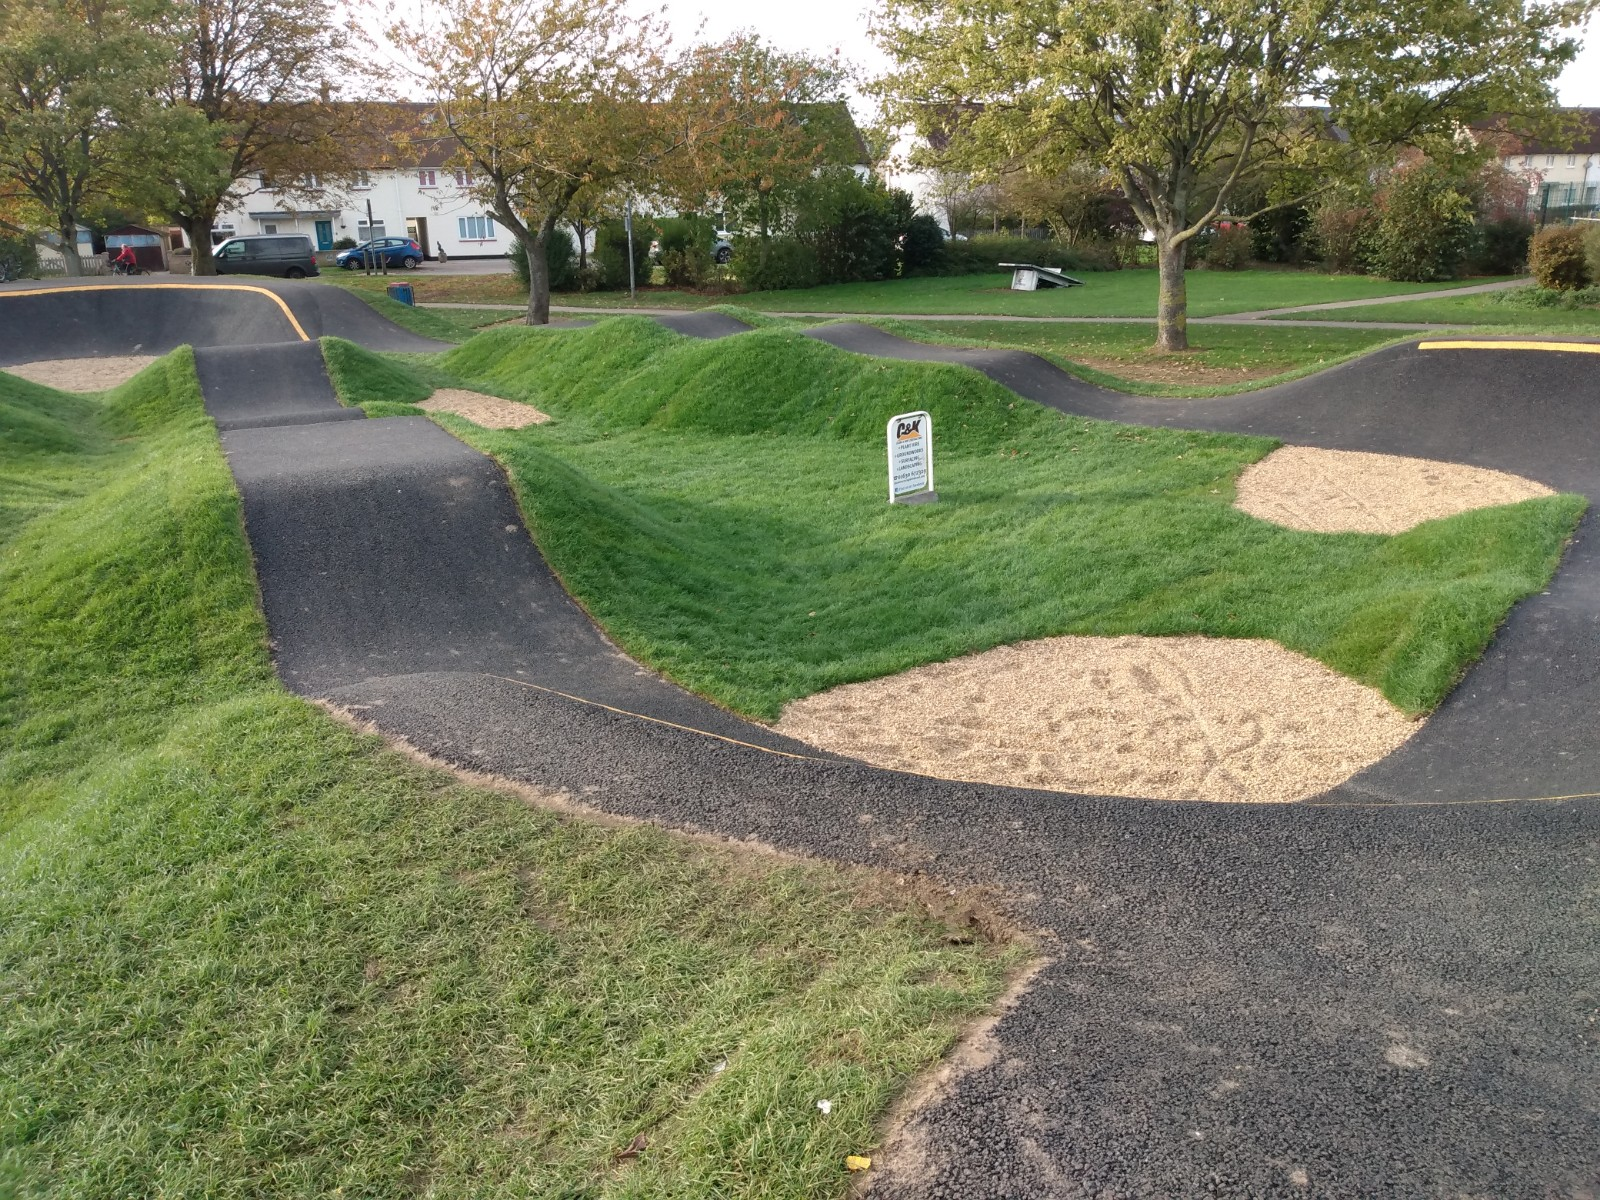 Example of a similar facility to that proposed for Chesterton Recreation Ground.